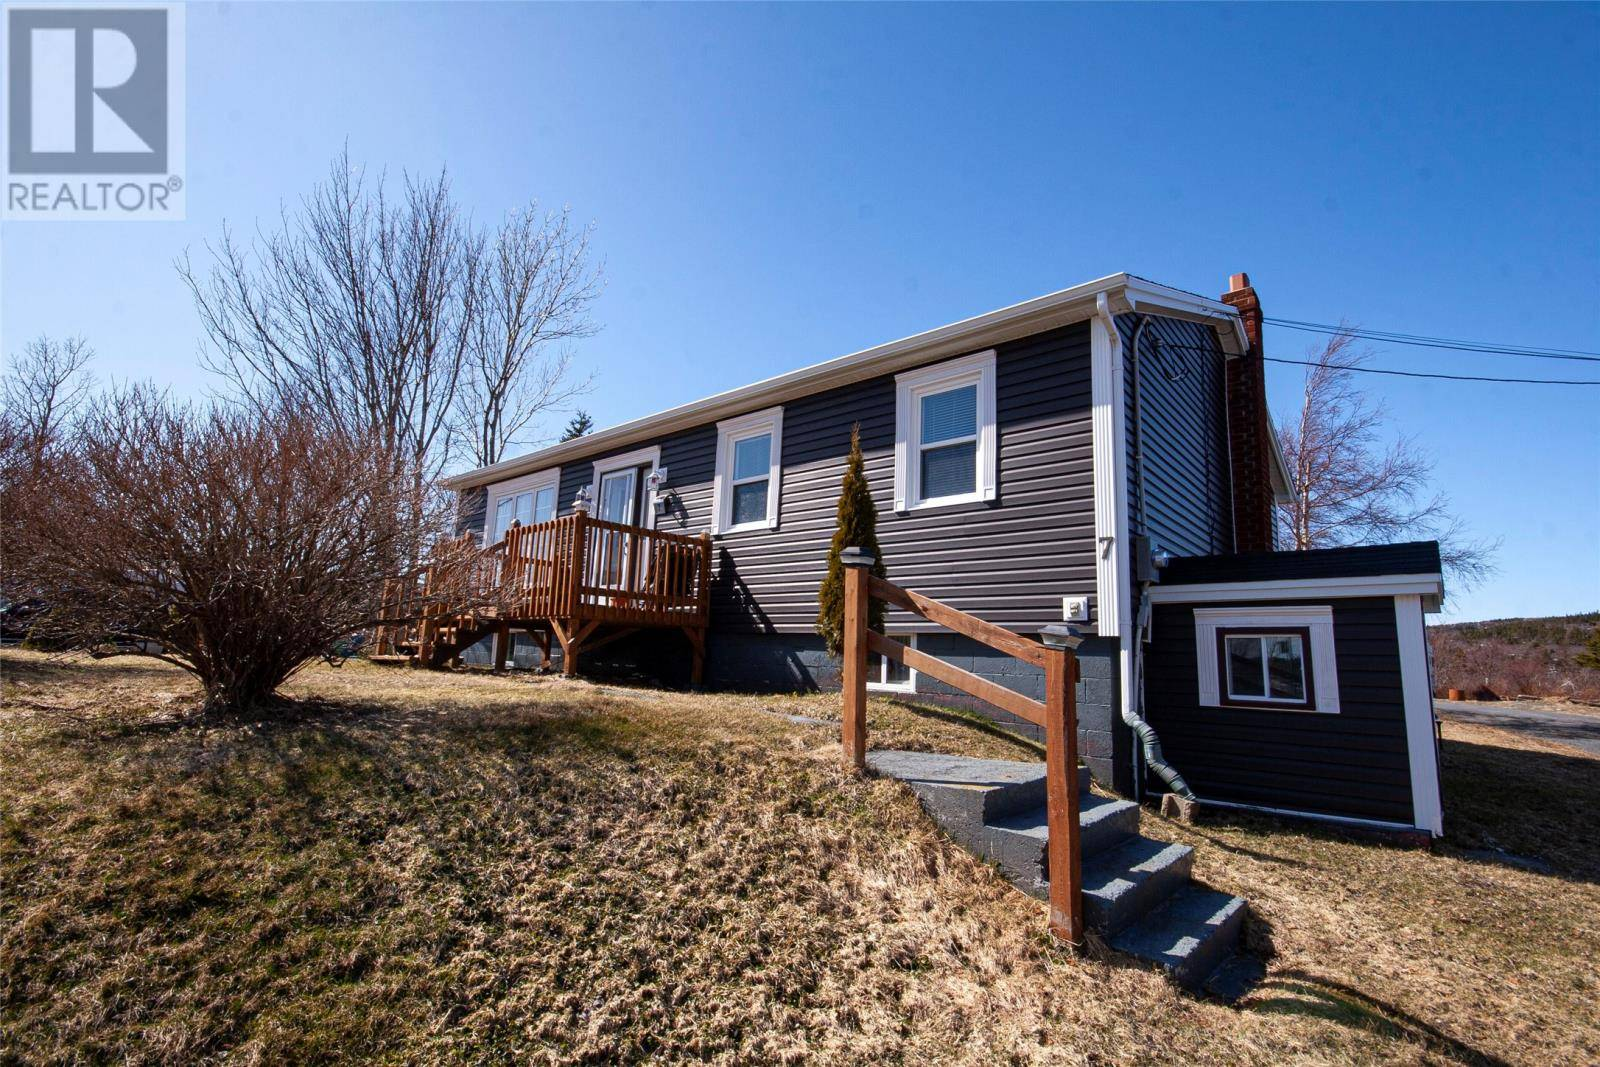 House for sale at 7 Deerings Rd Victoria Newfoundland - MLS: 1212959